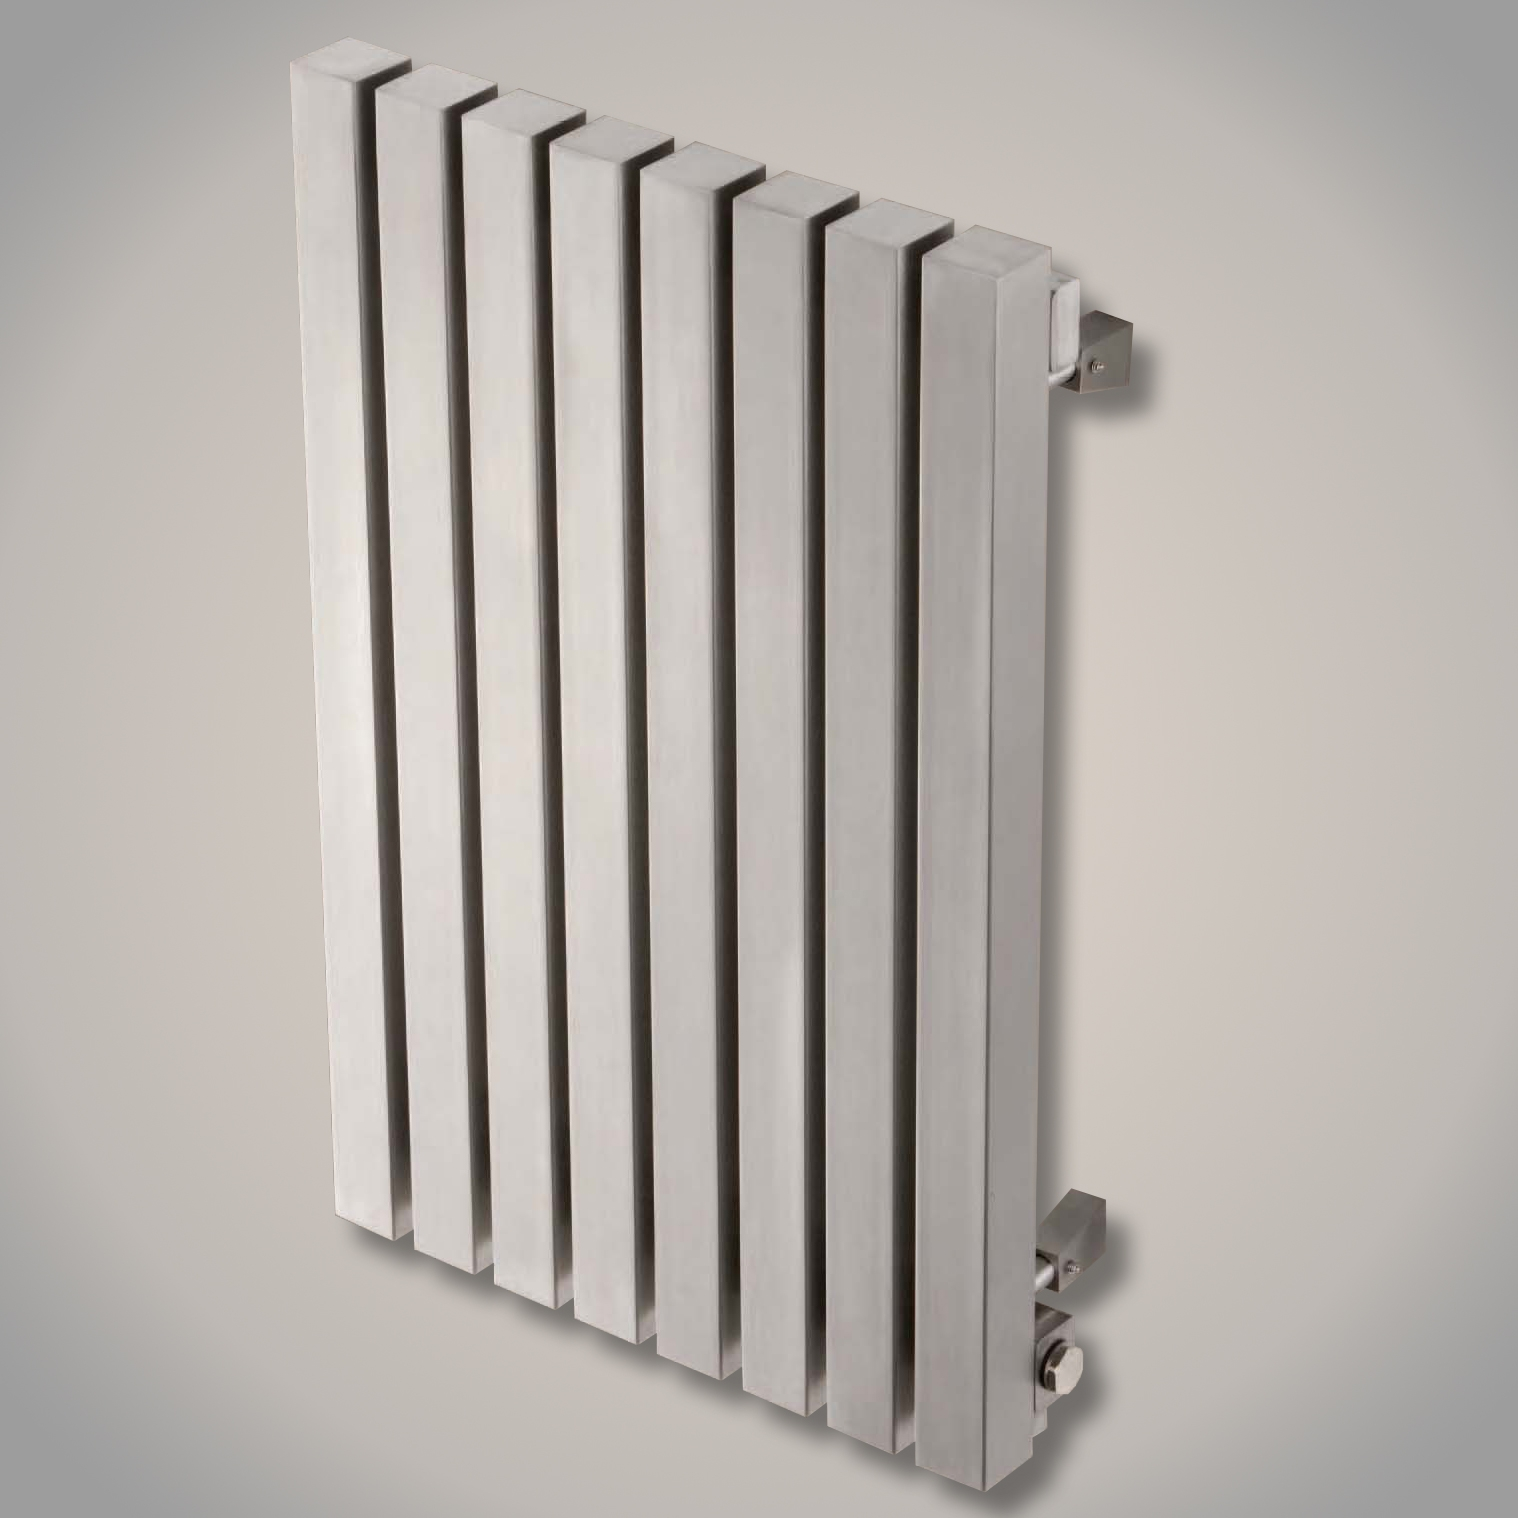 Aeon Kare Wall Mounted Brushed Stainless Steel Radiators